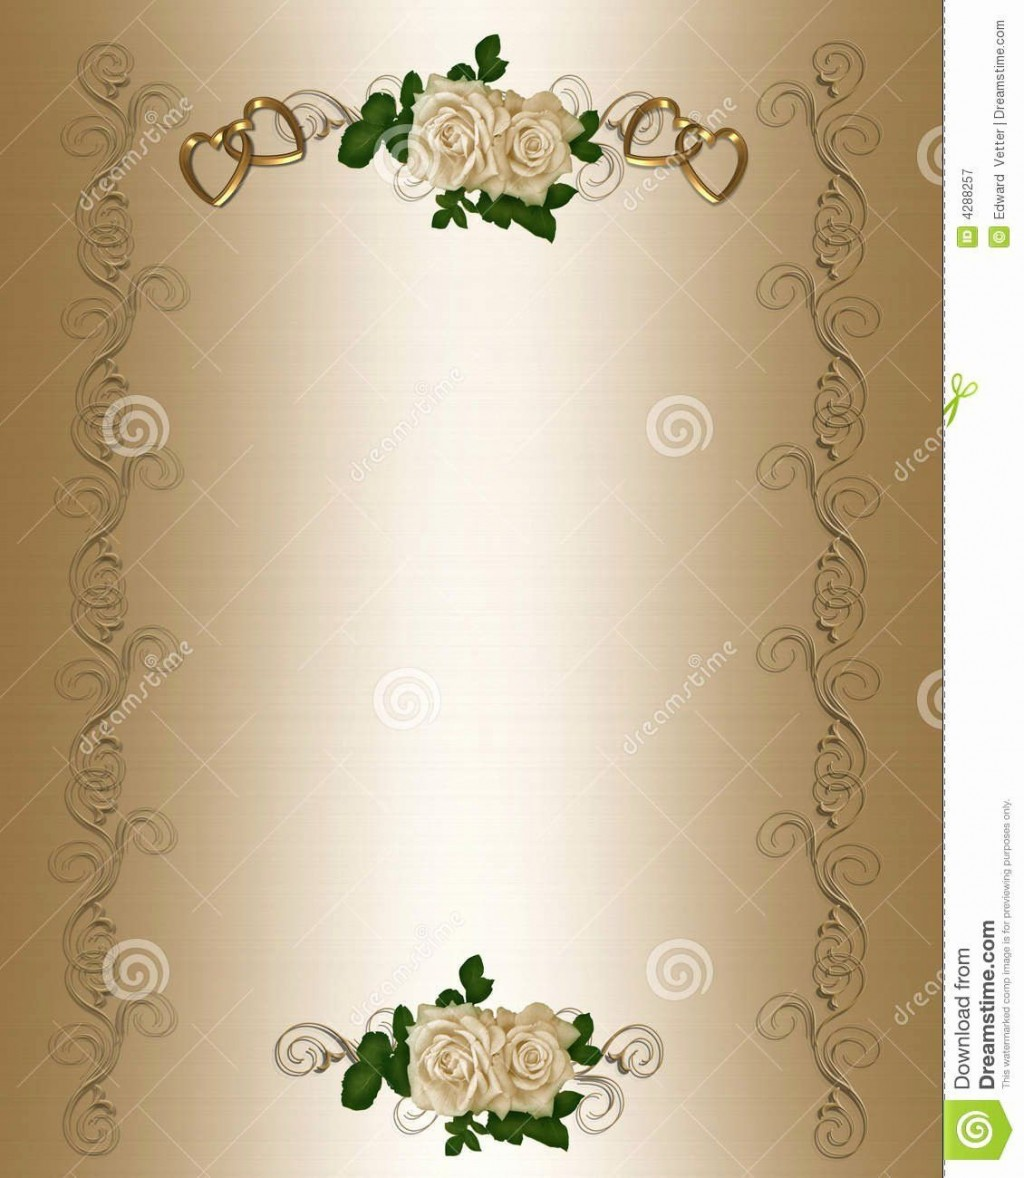 006 Excellent Free Download Invitation Card Template Inspiration  Templates Indian Wedding Design Software PngLarge